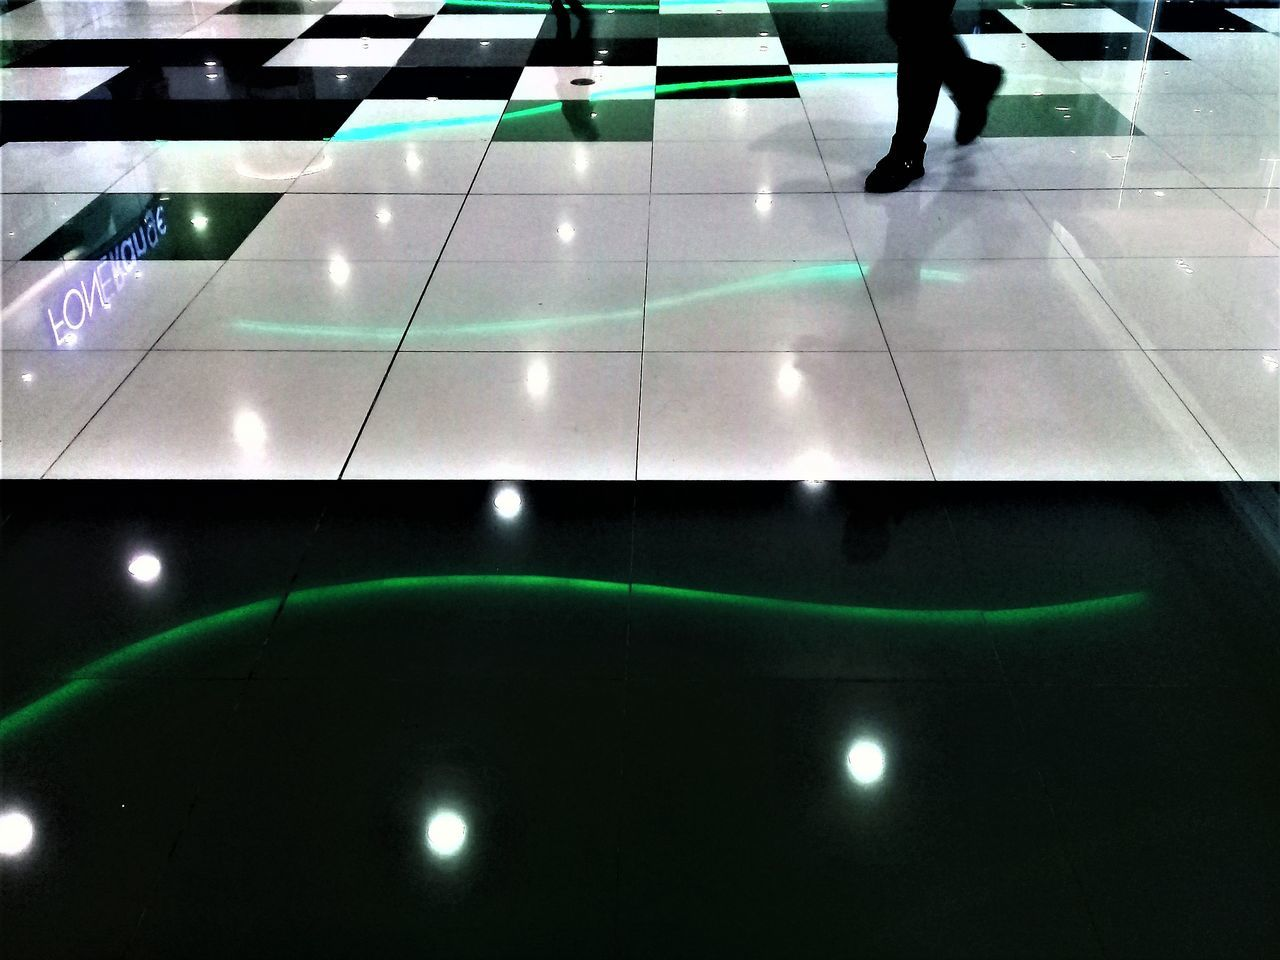 indoors, reflection, real people, low section, night, green color, illuminated, one person, human leg, lifestyles, people